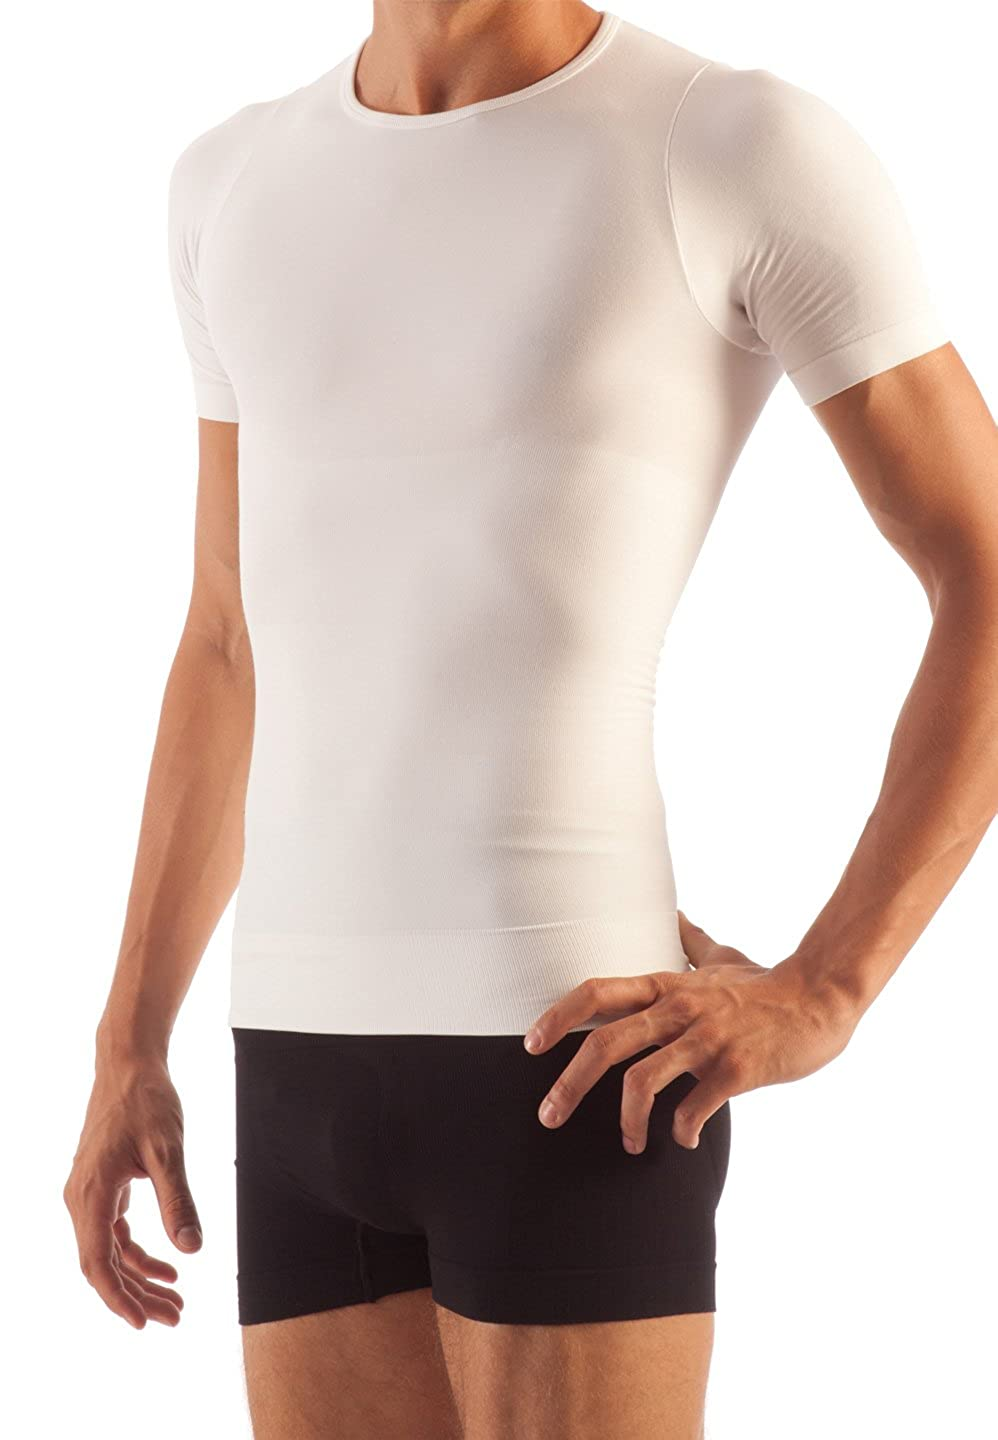 Farmacell 419 Men's Short Sleeve Tummy Control Body Shaping T-Shirt Calze G.T. S.r.l.